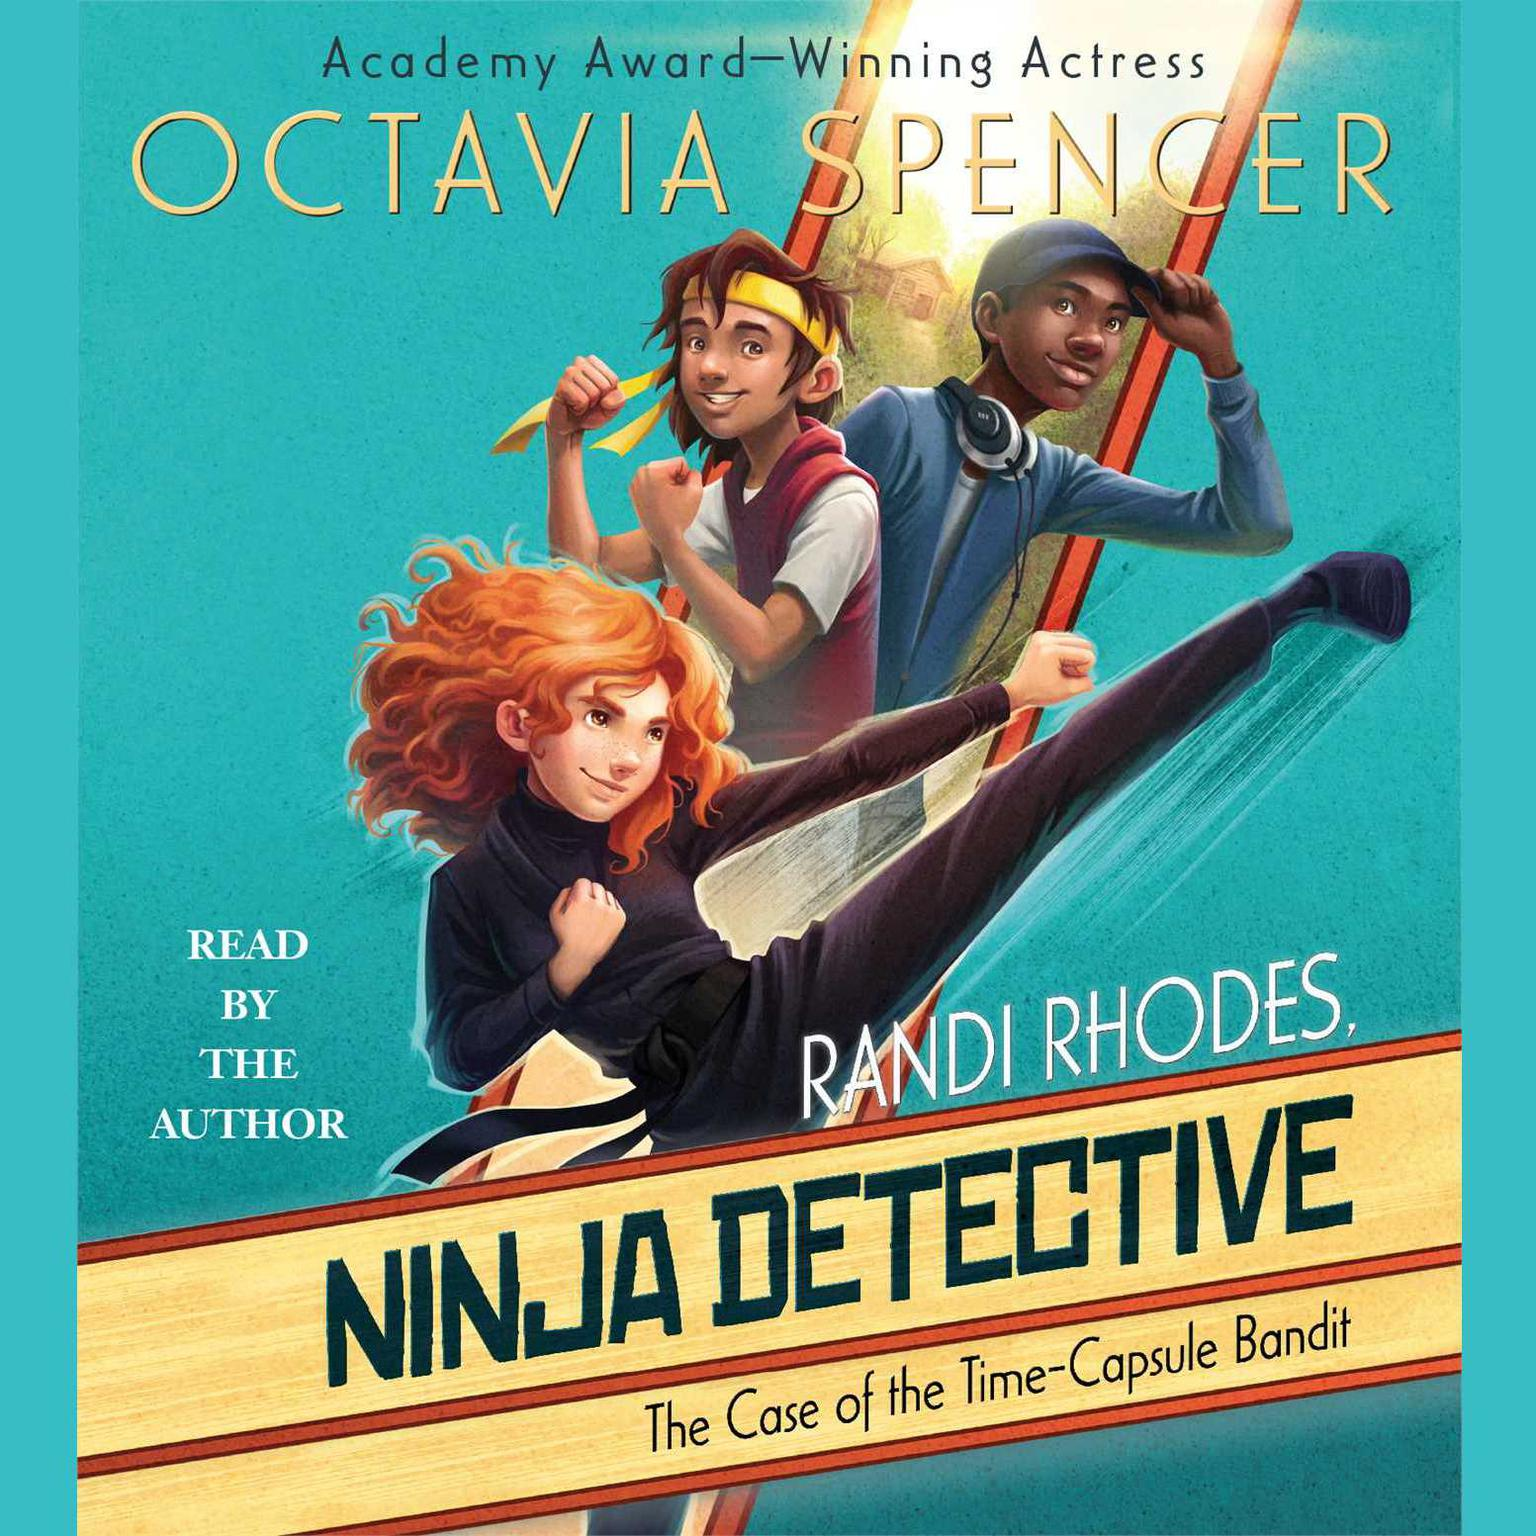 Printable The Case of the Time-Capsule Bandit Audiobook Cover Art